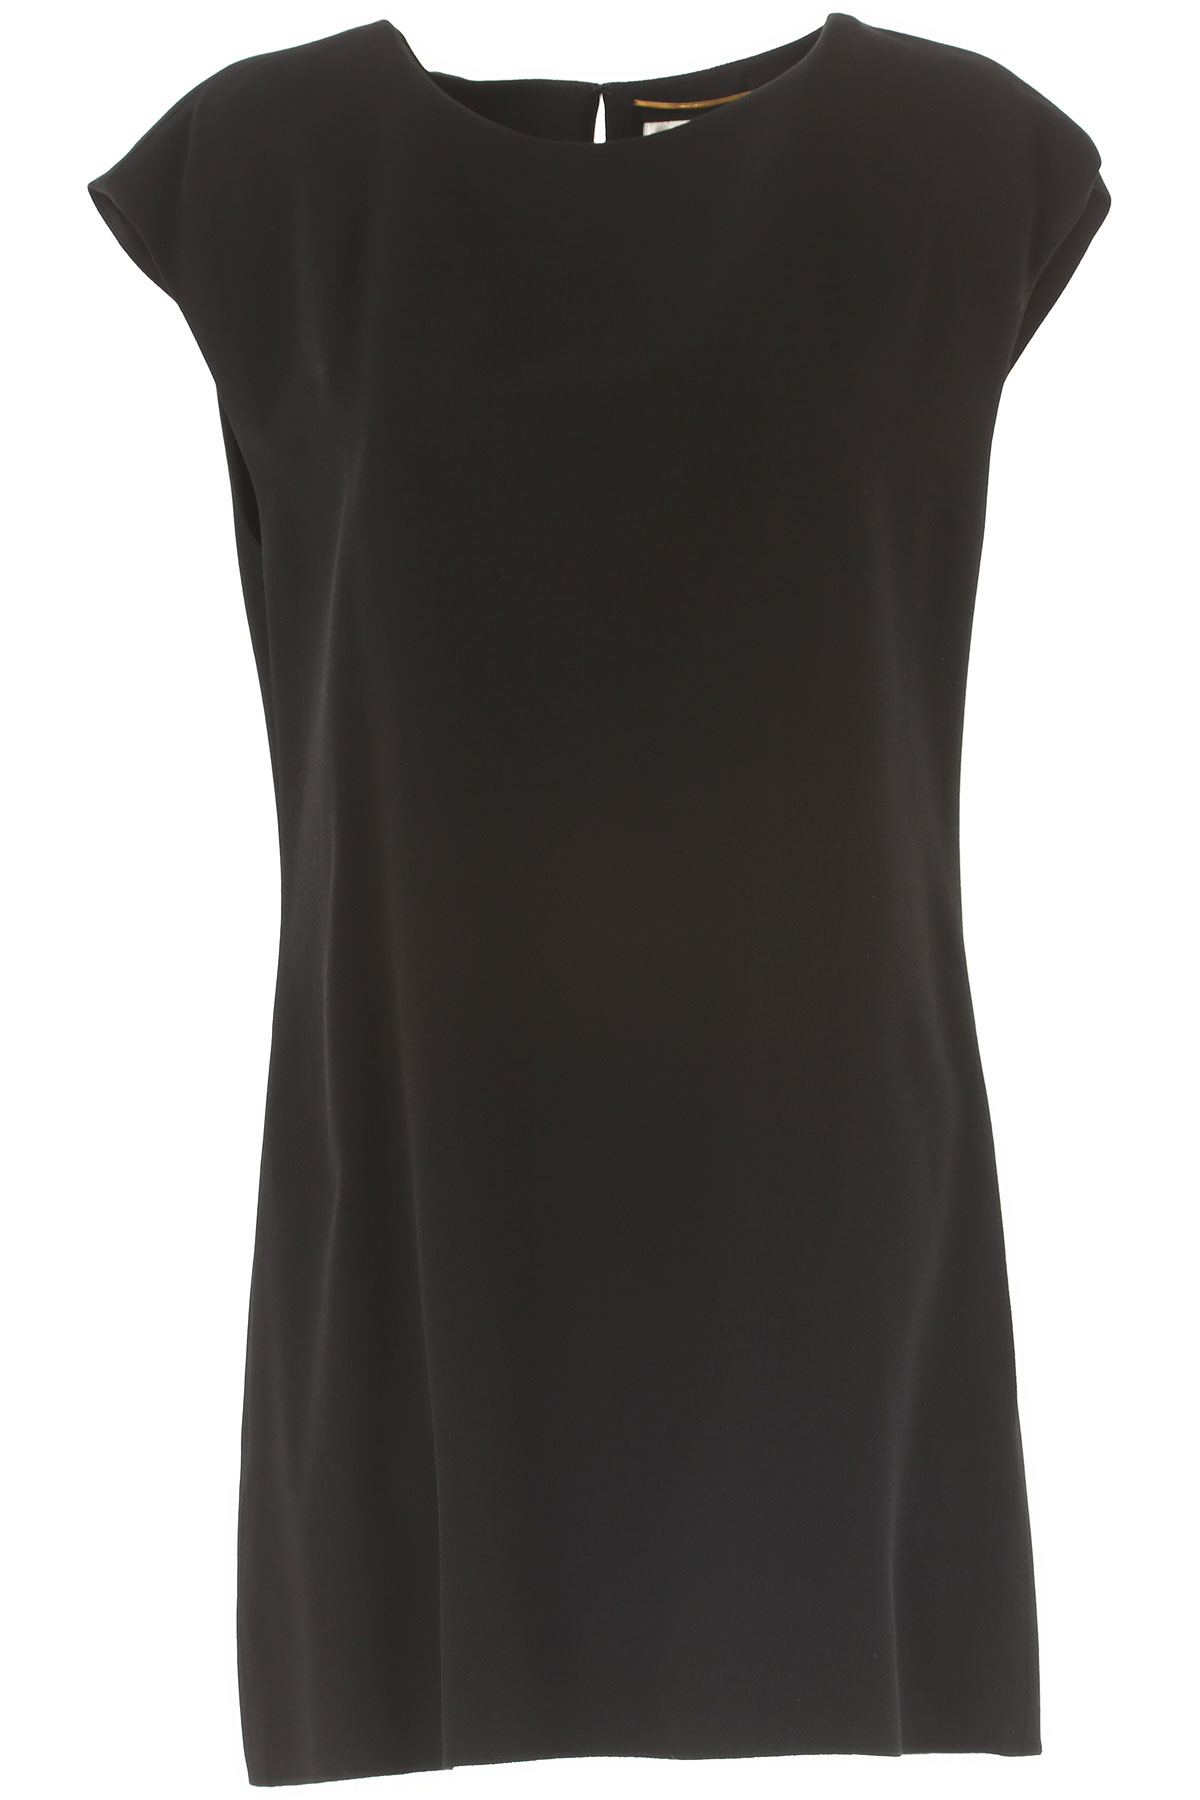 Yves Saint Laurent Dress for Women, Evening Cocktail Party On Sale in Outlet, Black, viscosa, 2019, 6 8